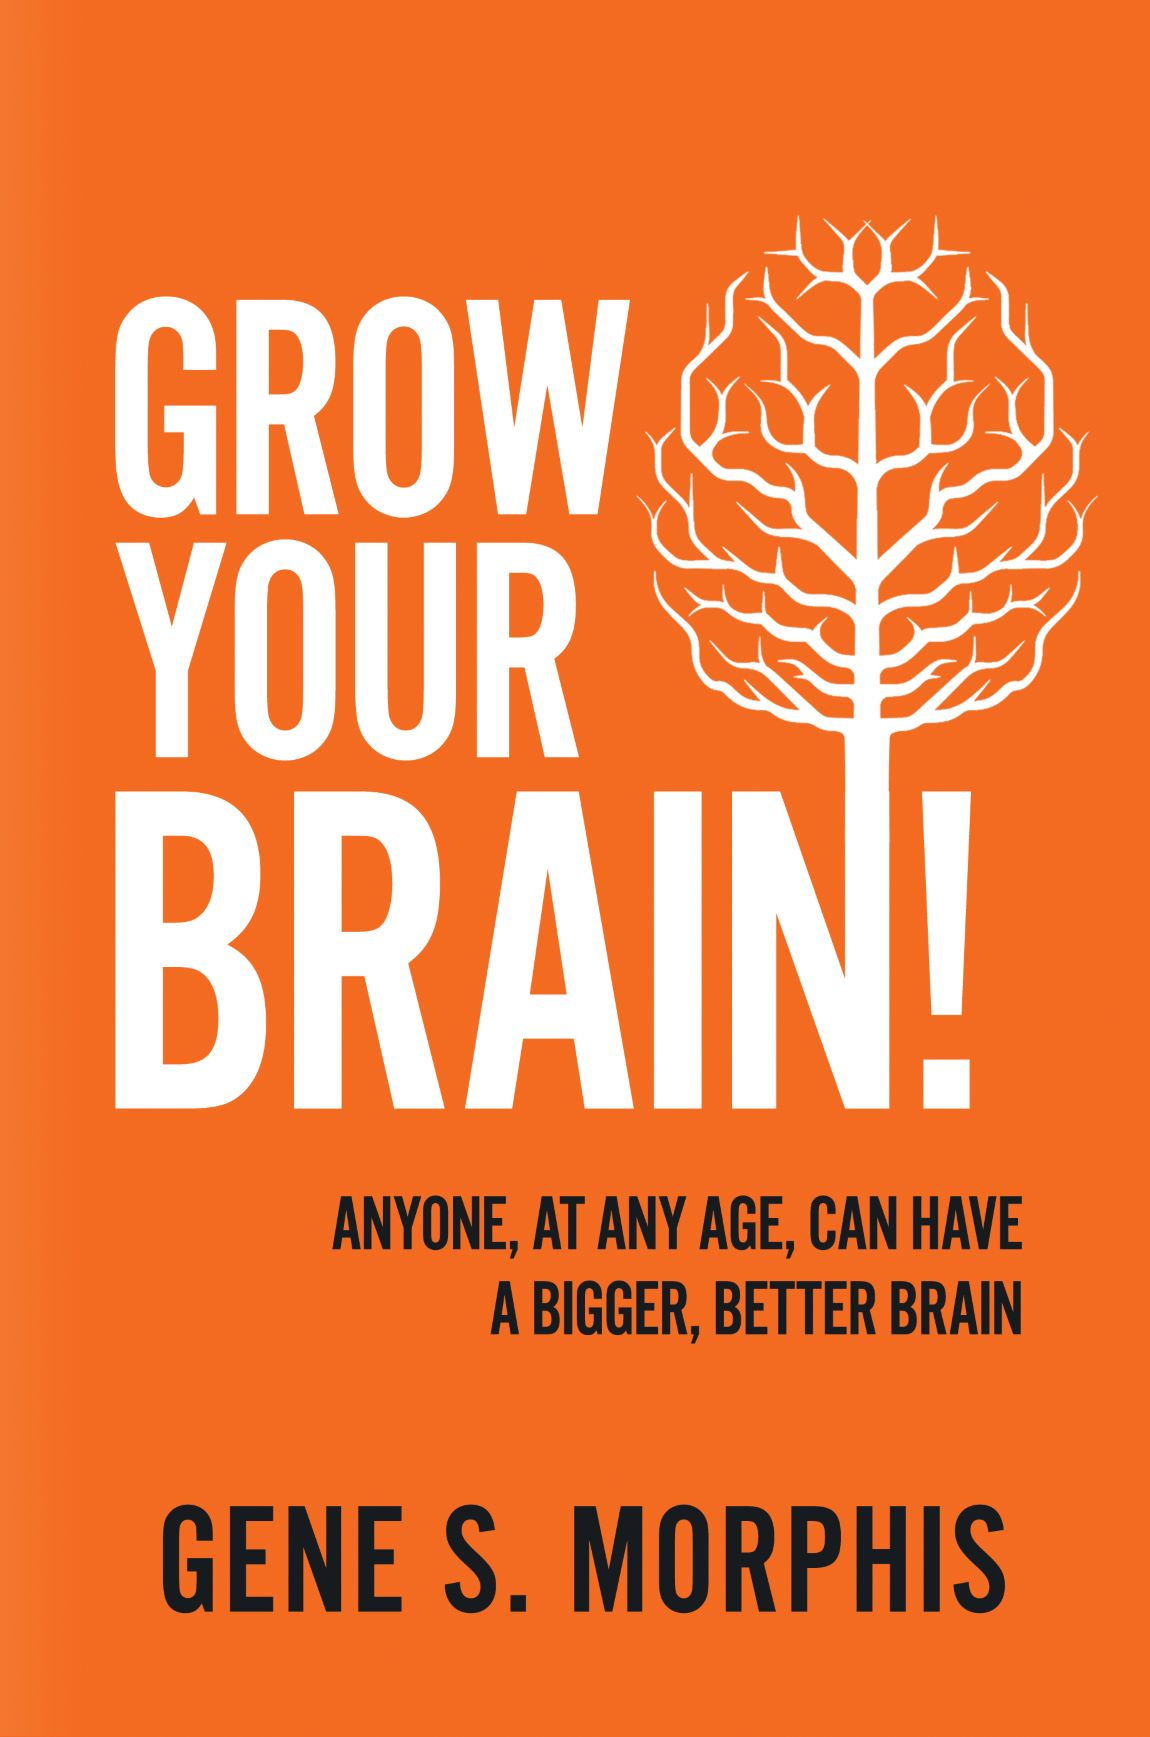 image-879727-KINDLE_Grow_Your_Brain!_16_Sept_2019_4MP-45c48.jpg